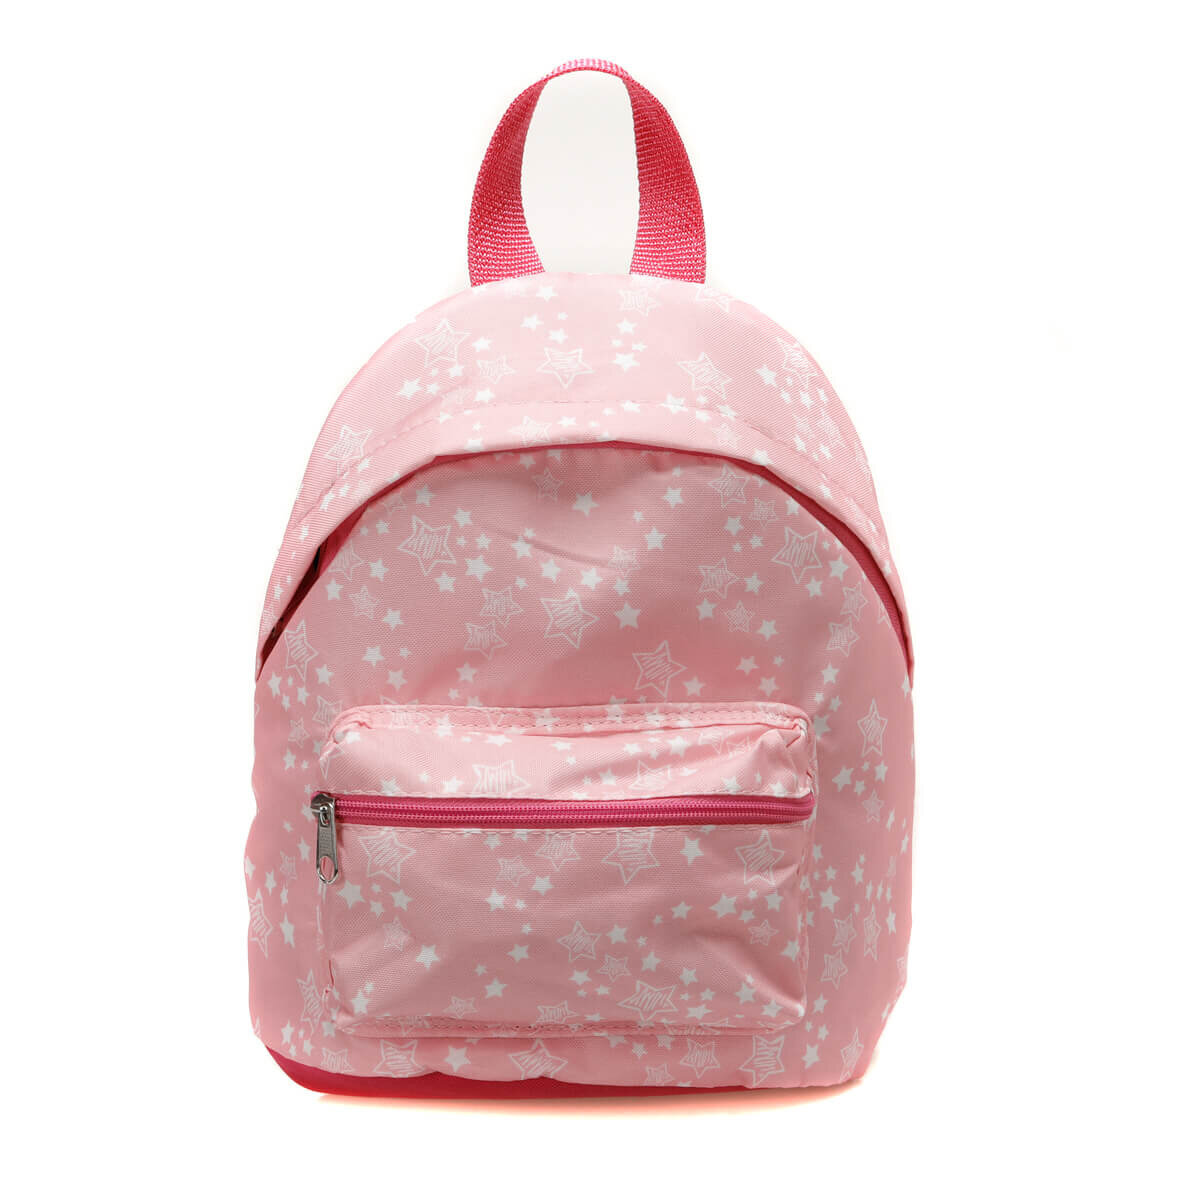 FLO GWSEN1101 Multicolour Female Child Backpack I-Cool